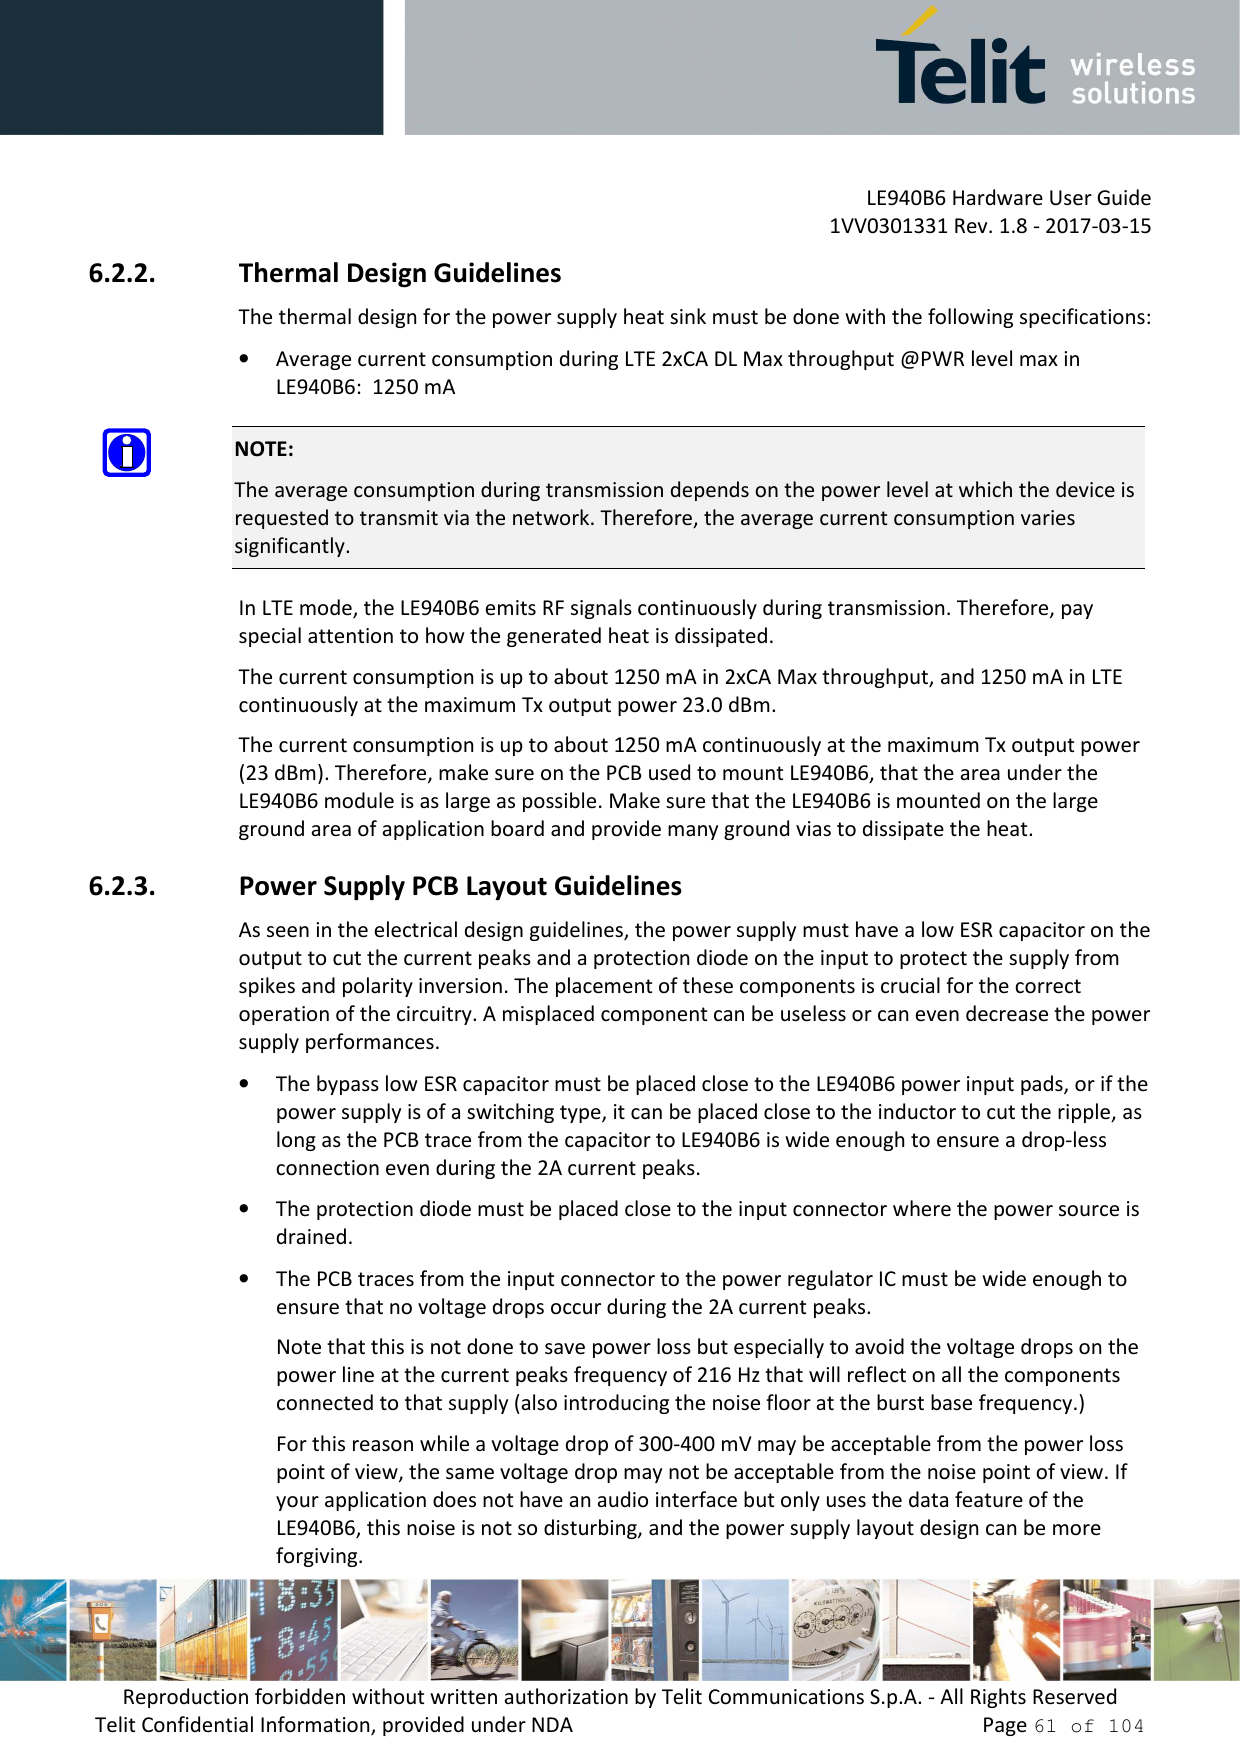 LE940B6 Hardware User Guide     1VV0301331 Rev. 1.8 - 2017-03-15 Reproduction forbidden without written authorization by Telit Communications S.p.A. - All Rights Reserved Telit Confidential Information, provided under NDA                 Page 61 of 104 6.2.2. Thermal Design Guidelines The thermal design for the power supply heat sink must be done with the following specifications: • Average current consumption during LTE 2xCA DL Max throughput @PWR level max in LE940B6:  1250 mA  NOTE: The average consumption during transmission depends on the power level at which the device is requested to transmit via the network. Therefore, the average current consumption varies significantly. In LTE mode, the LE940B6 emits RF signals continuously during transmission. Therefore, pay special attention to how the generated heat is dissipated. The current consumption is up to about 1250 mA in 2xCA Max throughput, and 1250 mA in LTE continuously at the maximum Tx output power 23.0 dBm.  The current consumption is up to about 1250 mA continuously at the maximum Tx output power (23 dBm). Therefore, make sure on the PCB used to mount LE940B6, that the area under the LE940B6 module is as large as possible. Make sure that the LE940B6 is mounted on the large ground area of application board and provide many ground vias to dissipate the heat.  6.2.3. Power Supply PCB Layout Guidelines As seen in the electrical design guidelines, the power supply must have a low ESR capacitor on the output to cut the current peaks and a protection diode on the input to protect the supply from spikes and polarity inversion. The placement of these components is crucial for the correct operation of the circuitry. A misplaced component can be useless or can even decrease the power supply performances. • The bypass low ESR capacitor must be placed close to the LE940B6 power input pads, or if the power supply is of a switching type, it can be placed close to the inductor to cut the ripple, as long as the PCB trace